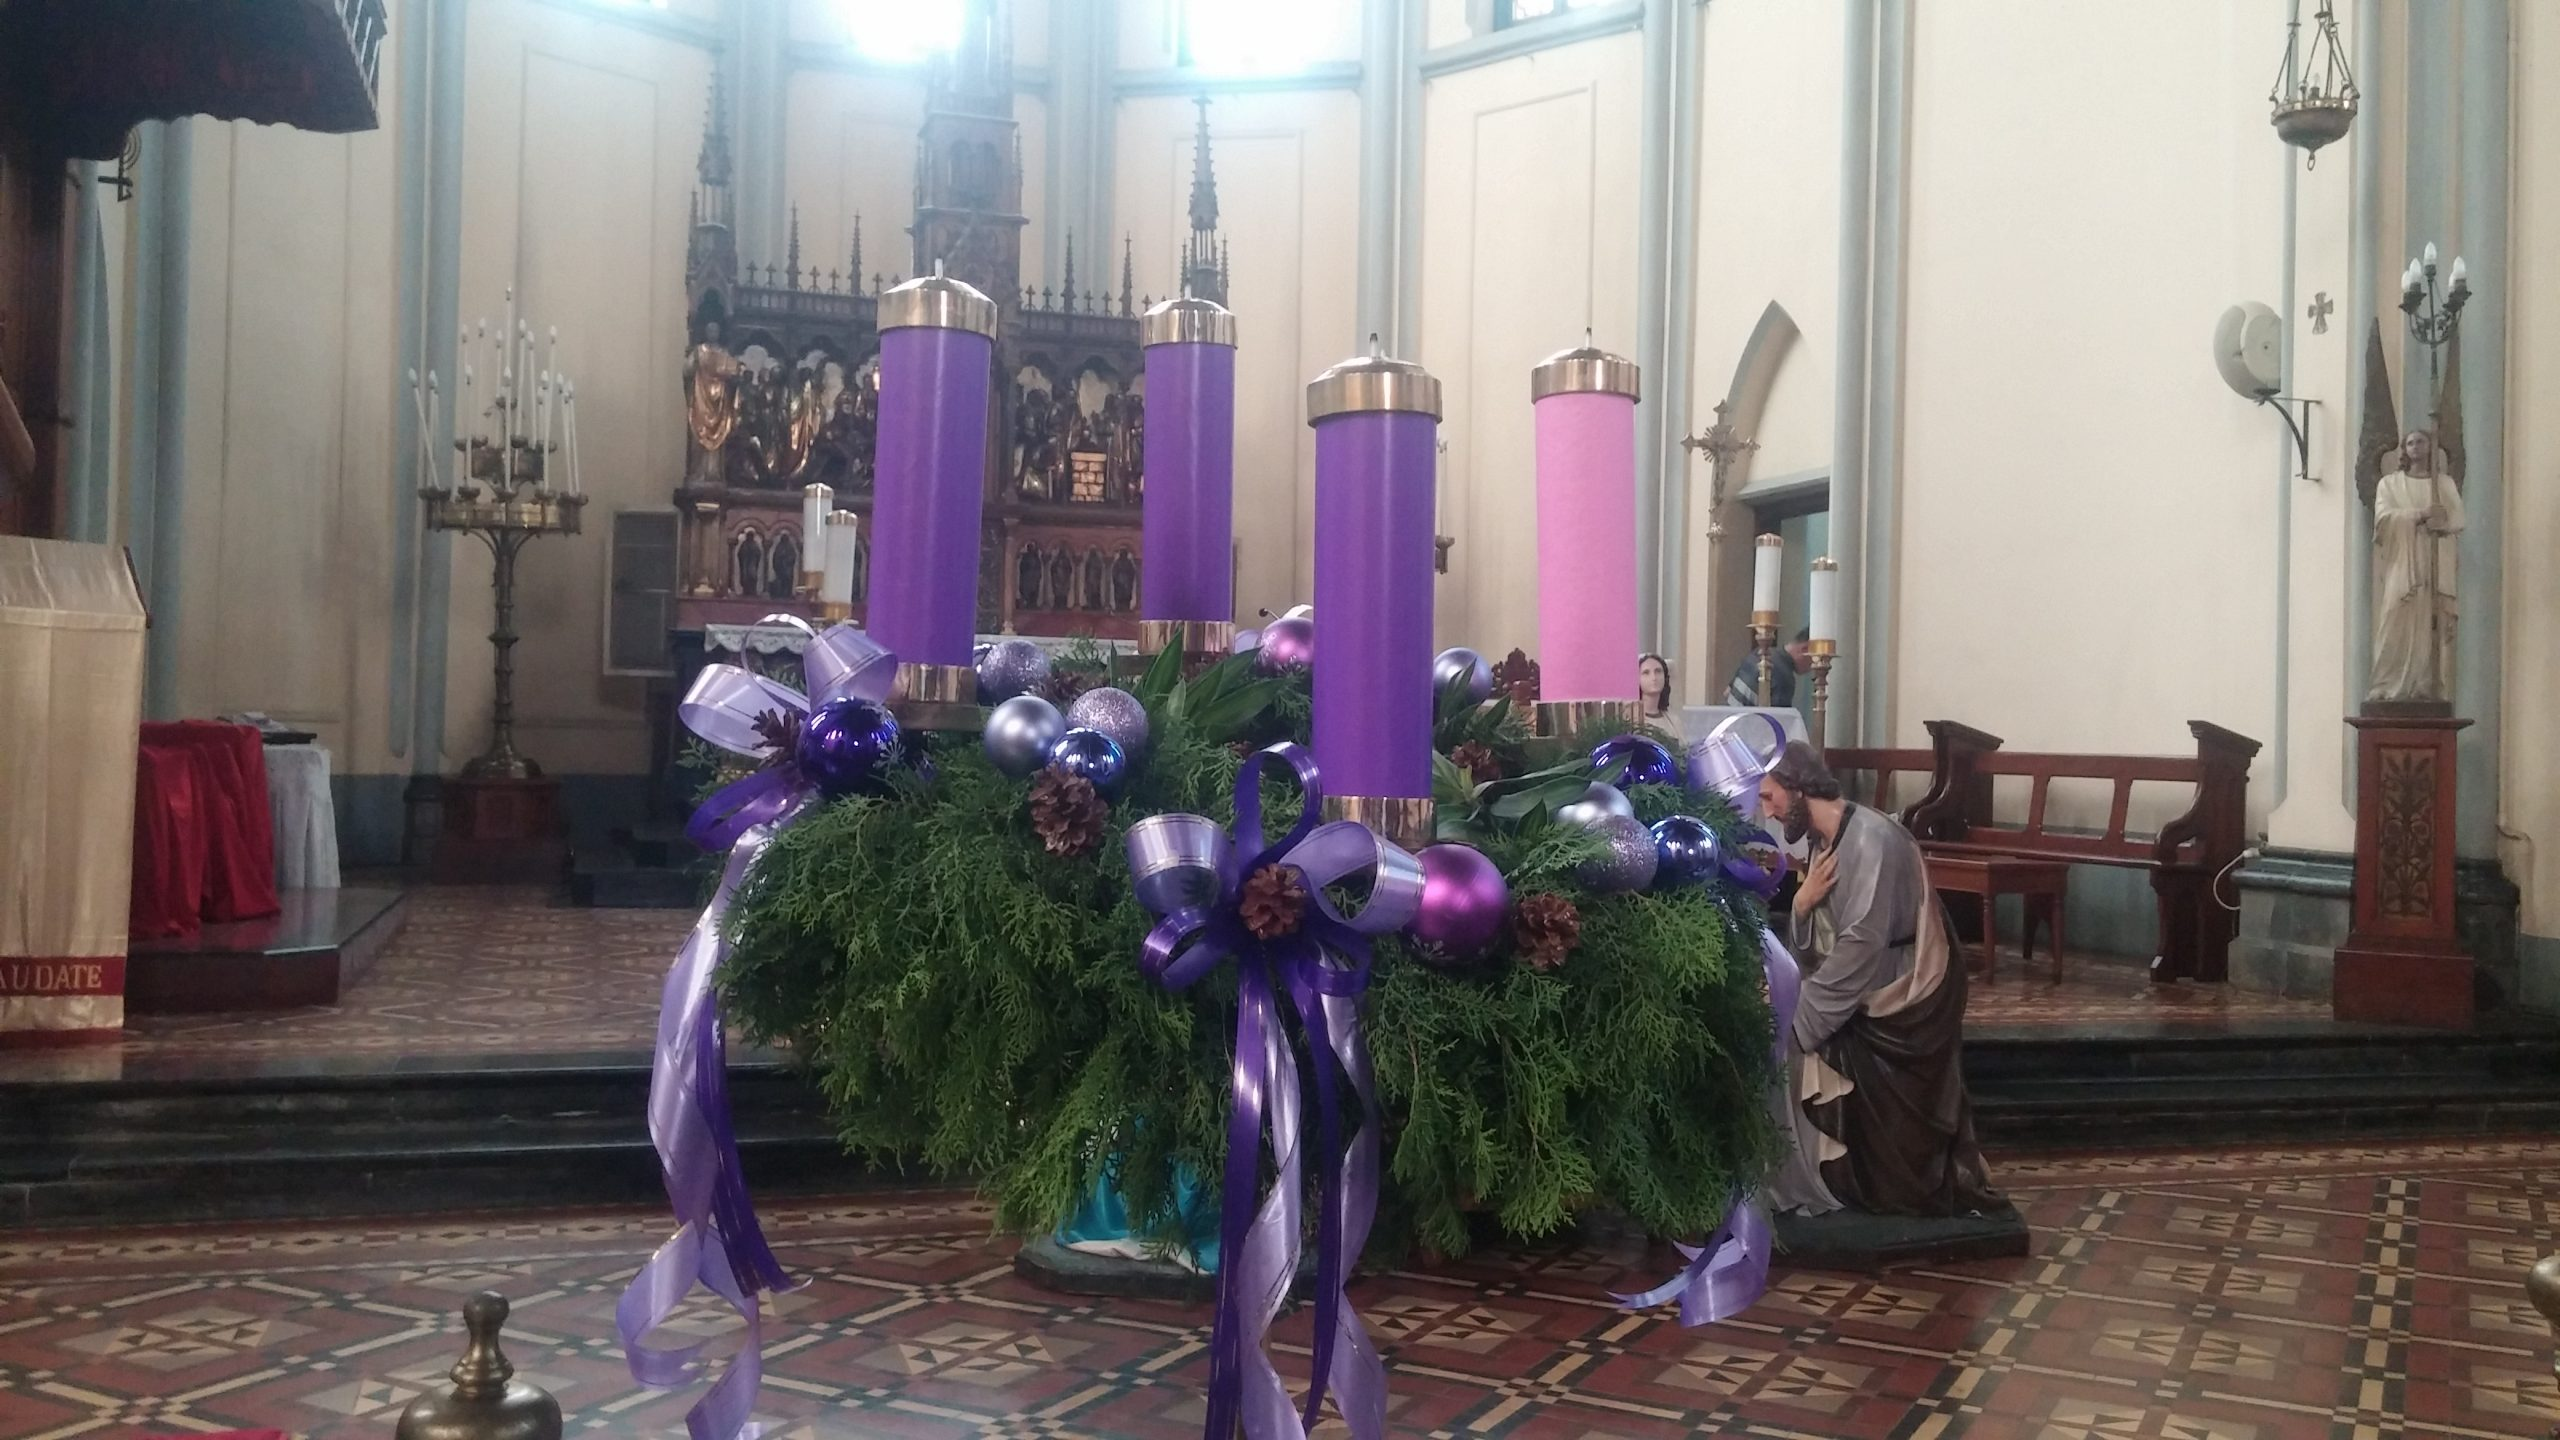 Cycles within Cycles: The Liturgical Year and Christian Time